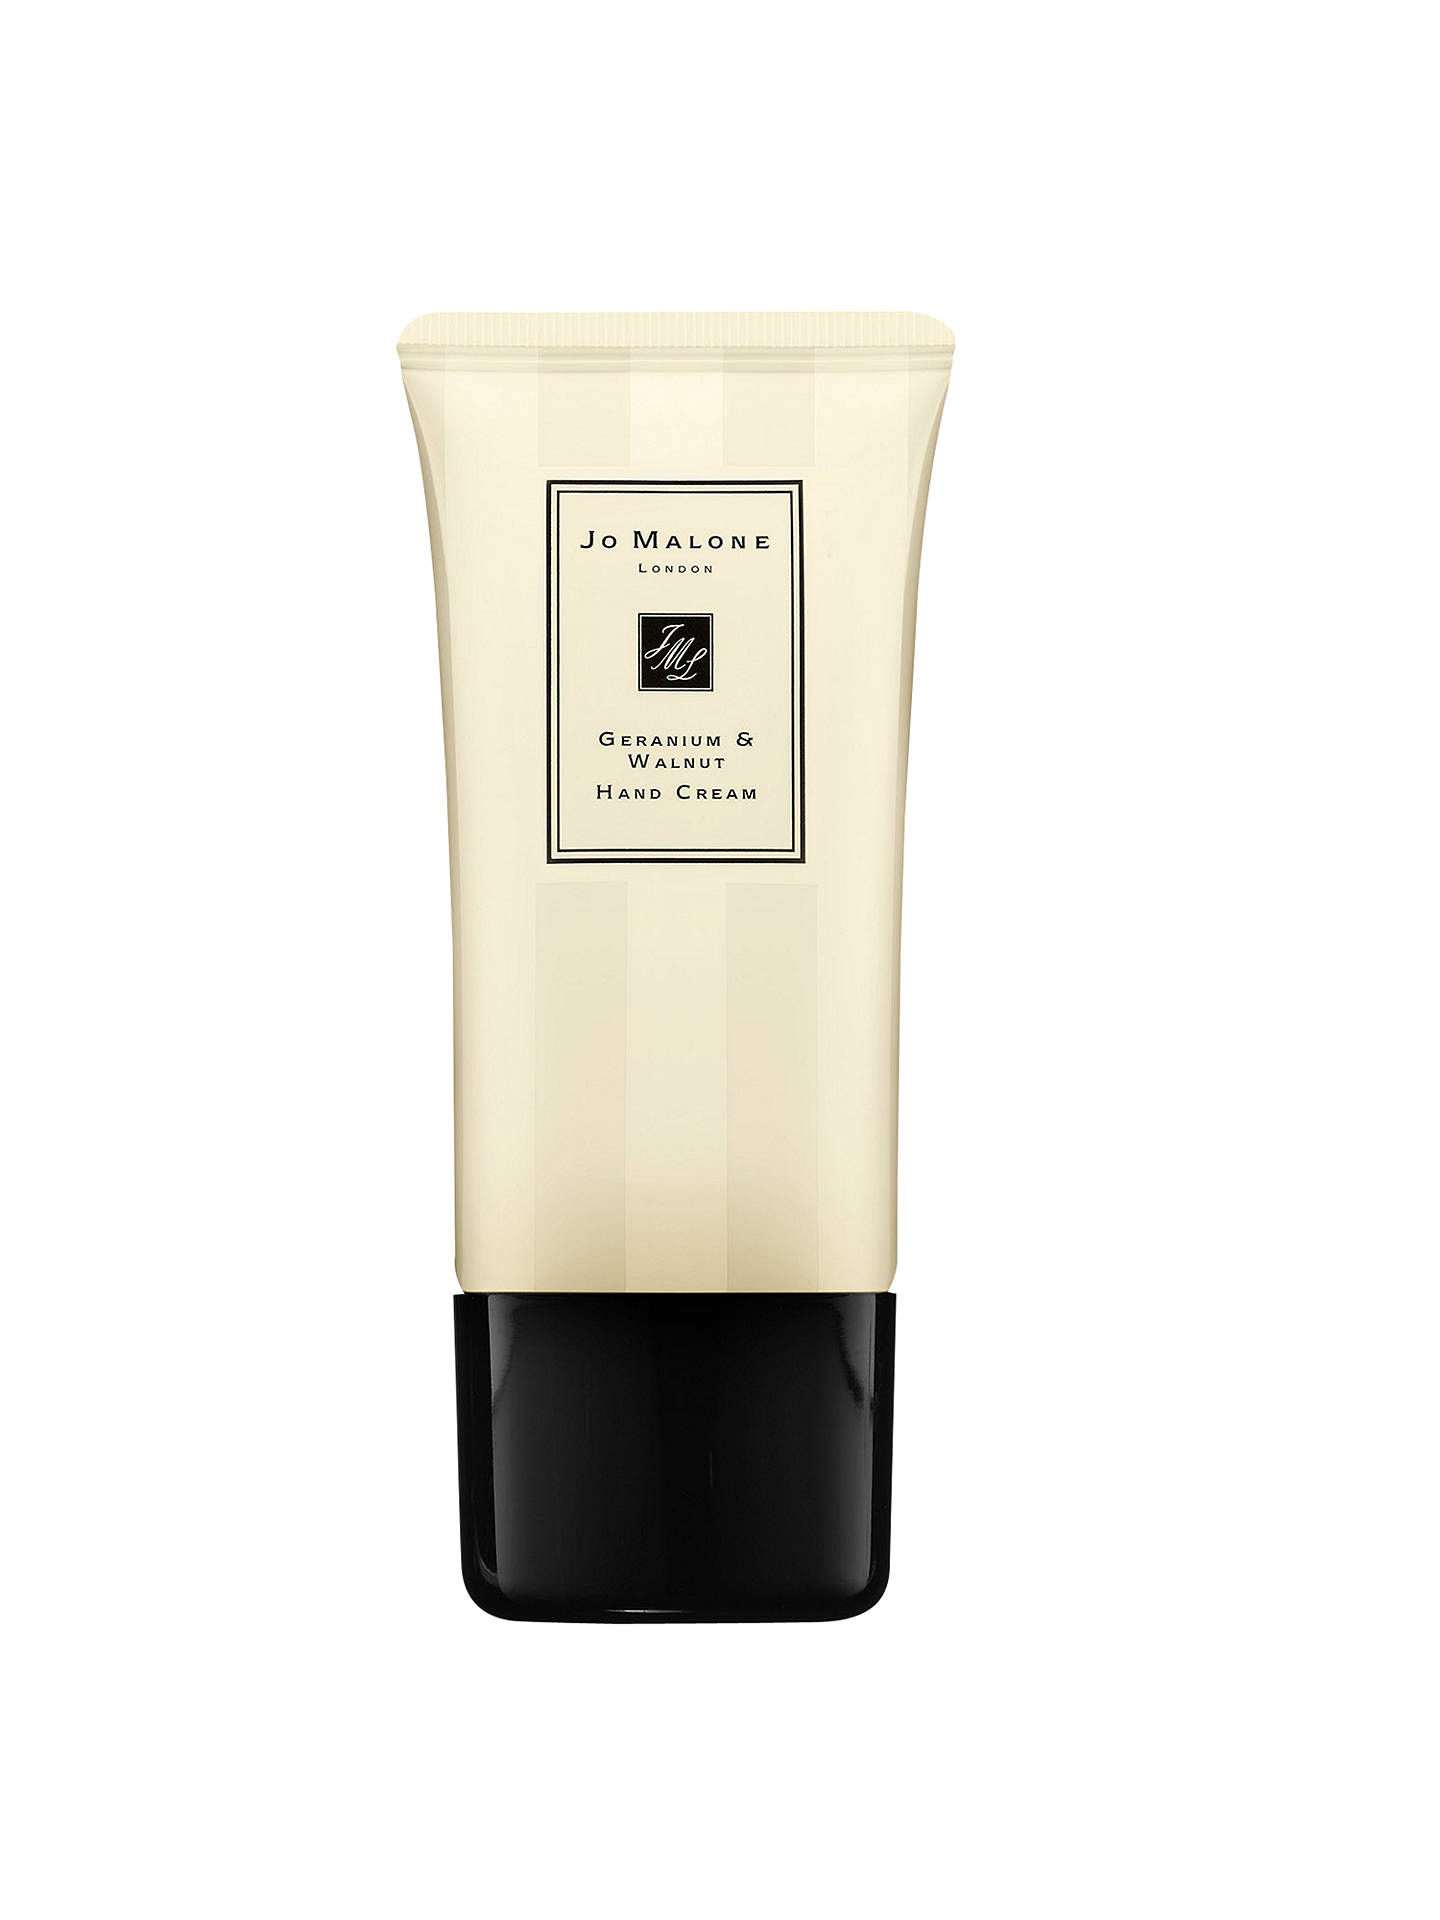 BuyJo Malone London Geranium & Walnut Hand Cream, 50ml Online at johnlewis.com